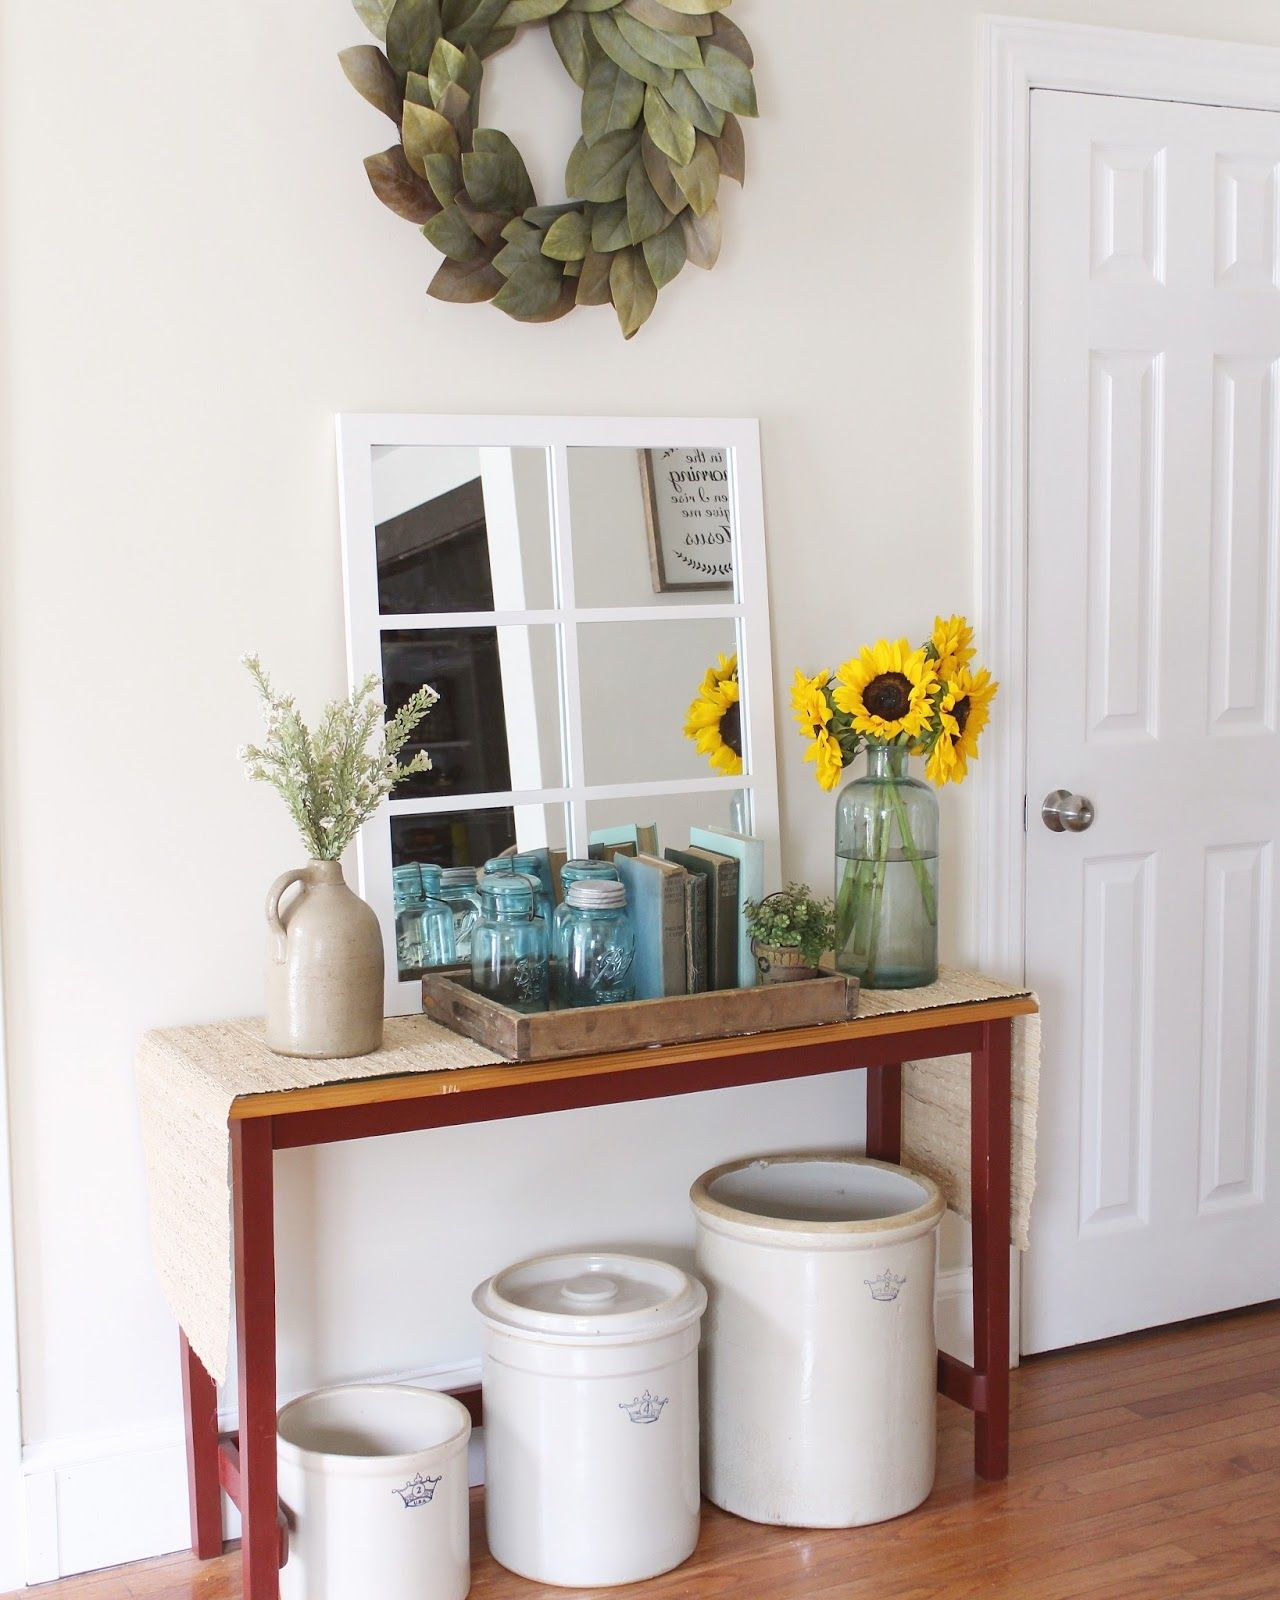 My farmhouse vintage style is just becoming more obsessive by nature. I swear I can't pass a basket or a crate without having some sort of c...